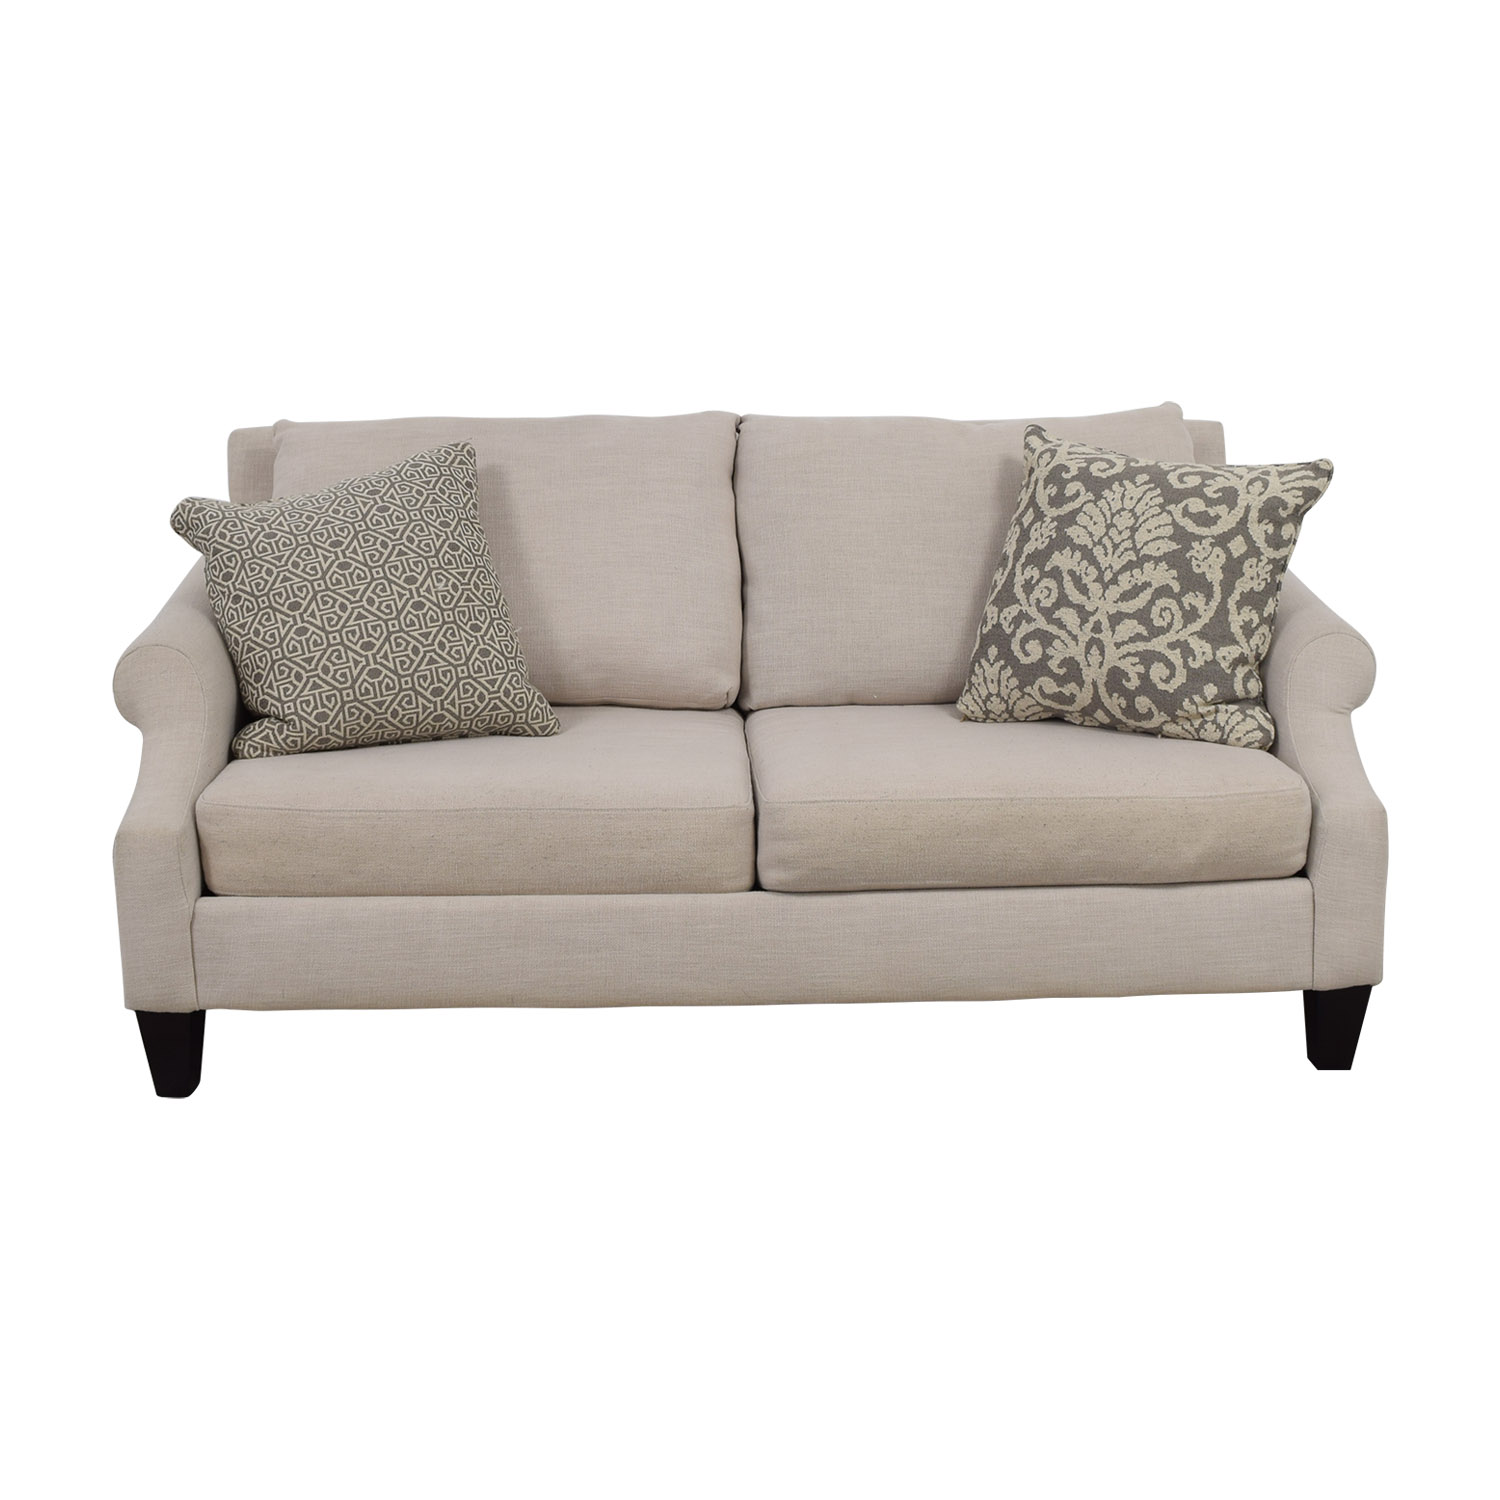 buy Rooms To Go Rooms To Go Beige Two-Cushion Loveseat online